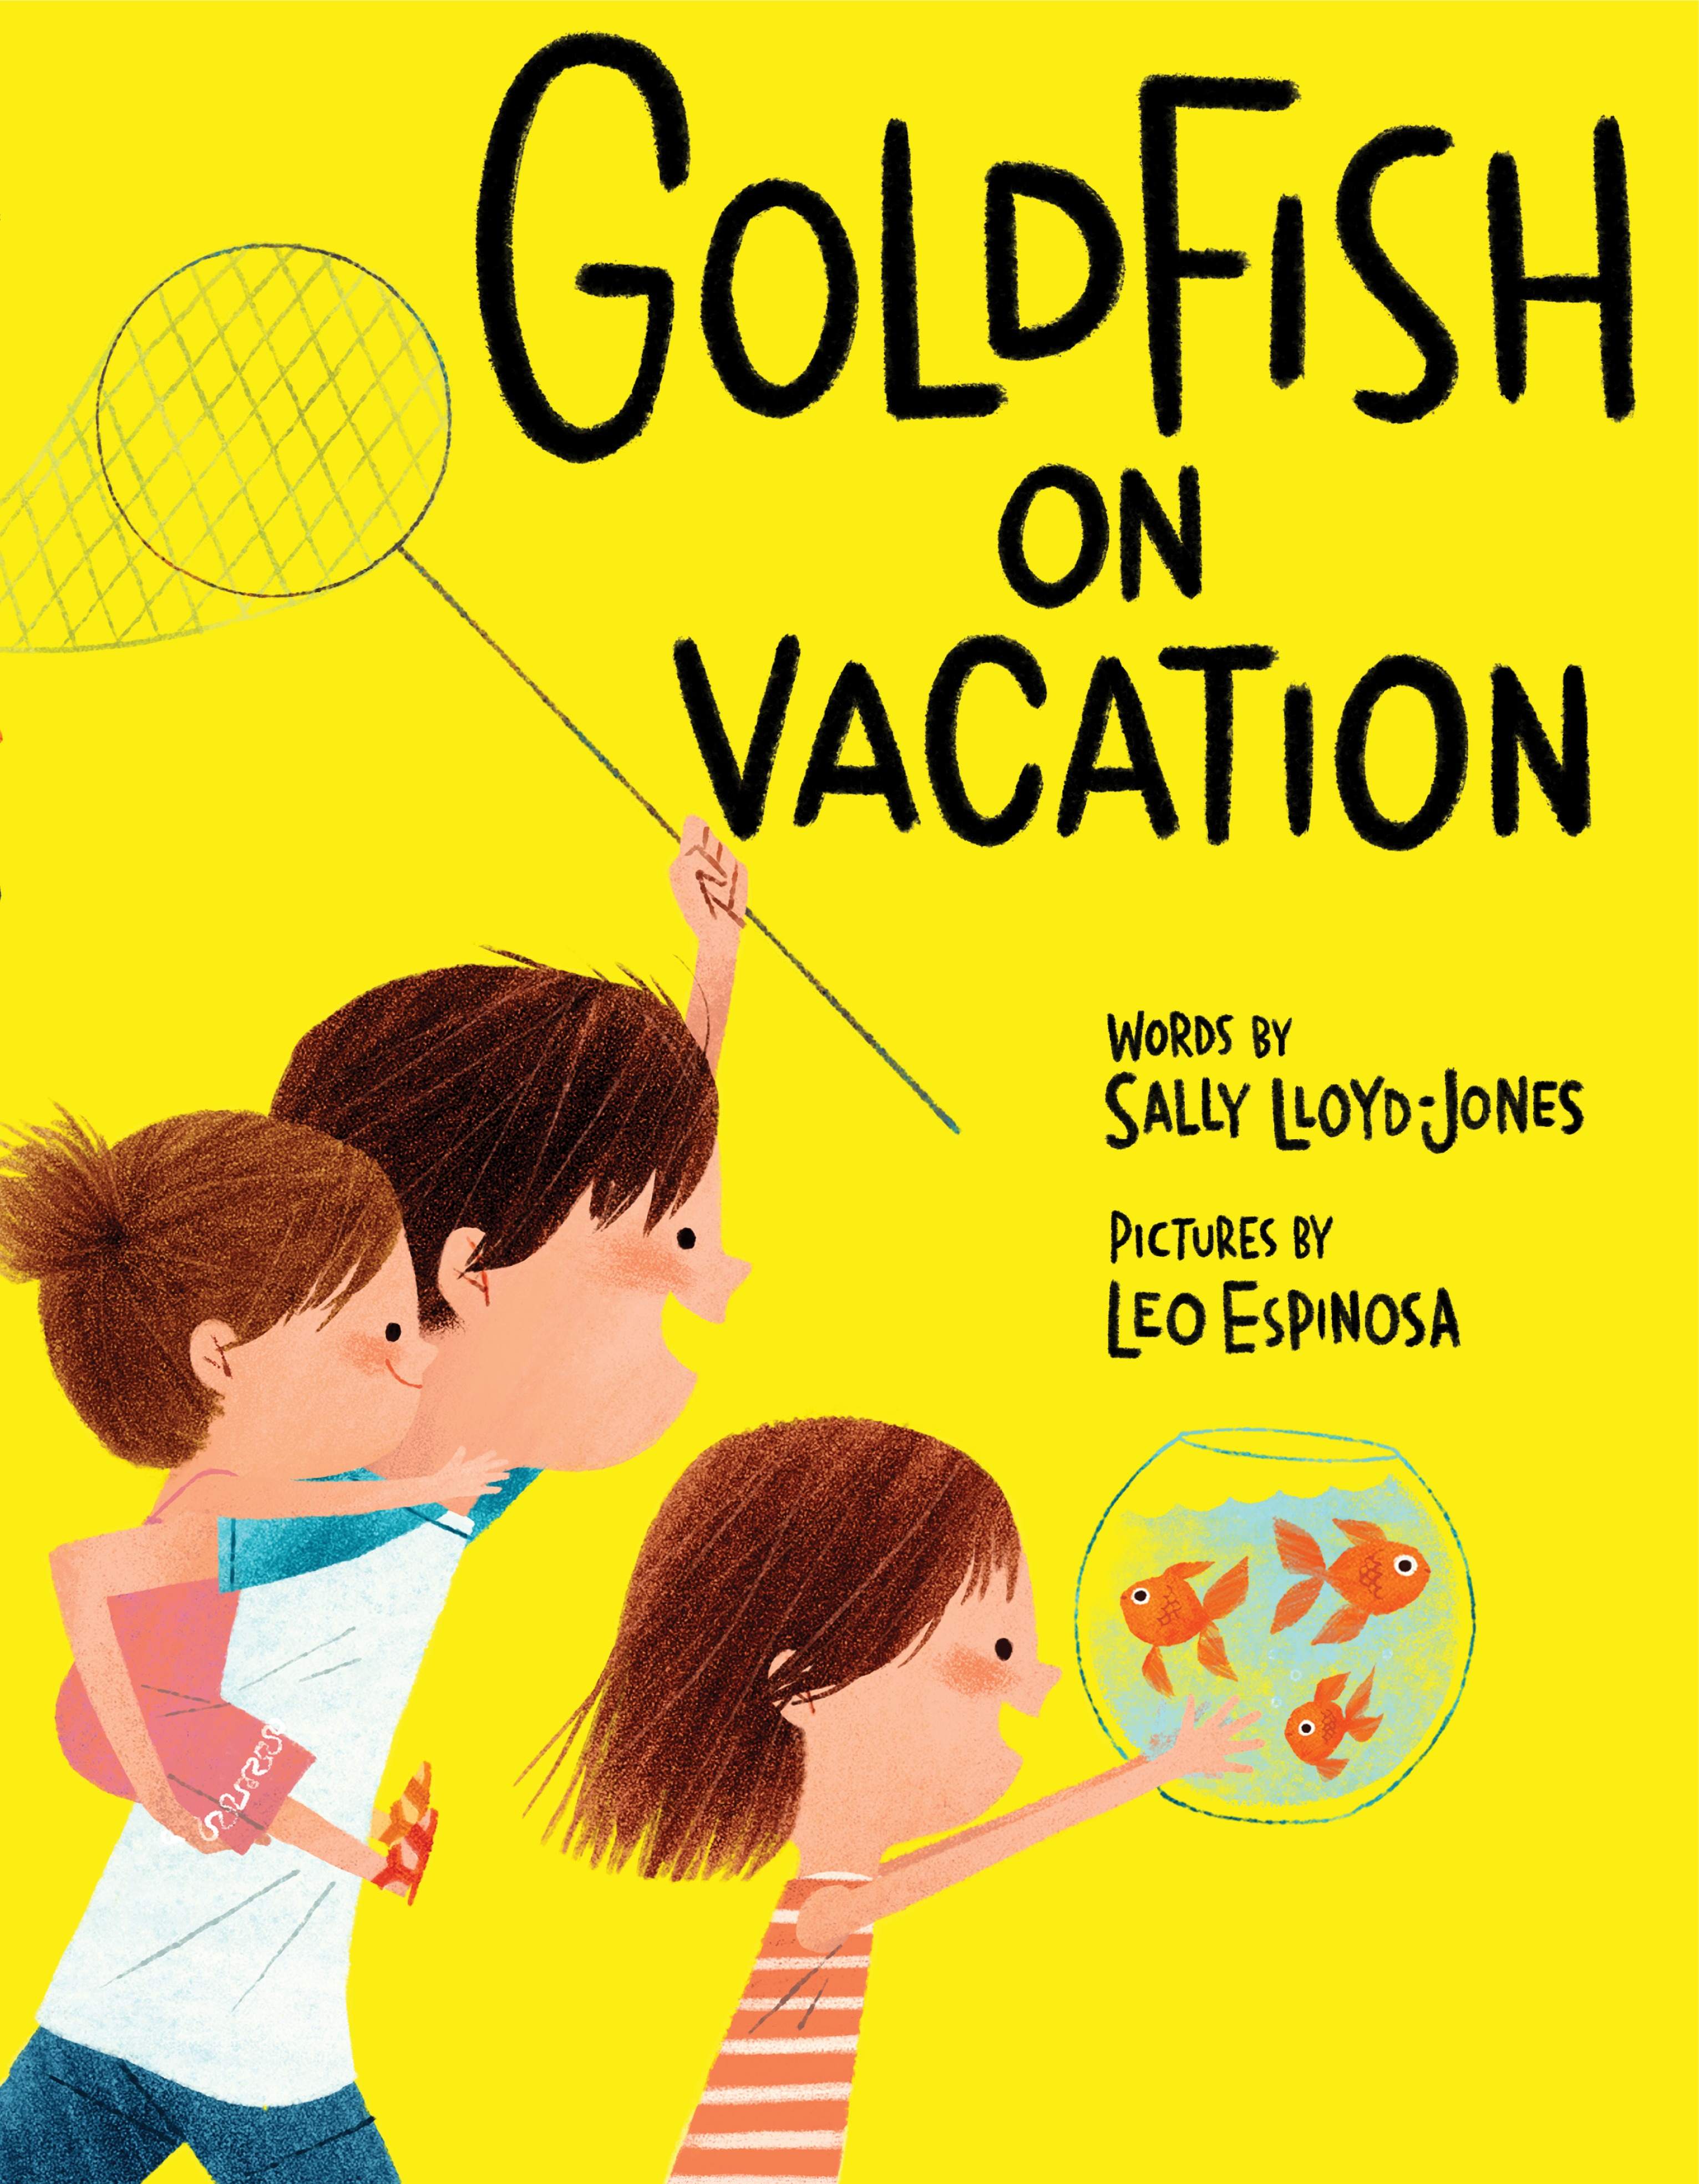 Goldfish on Vacation cover